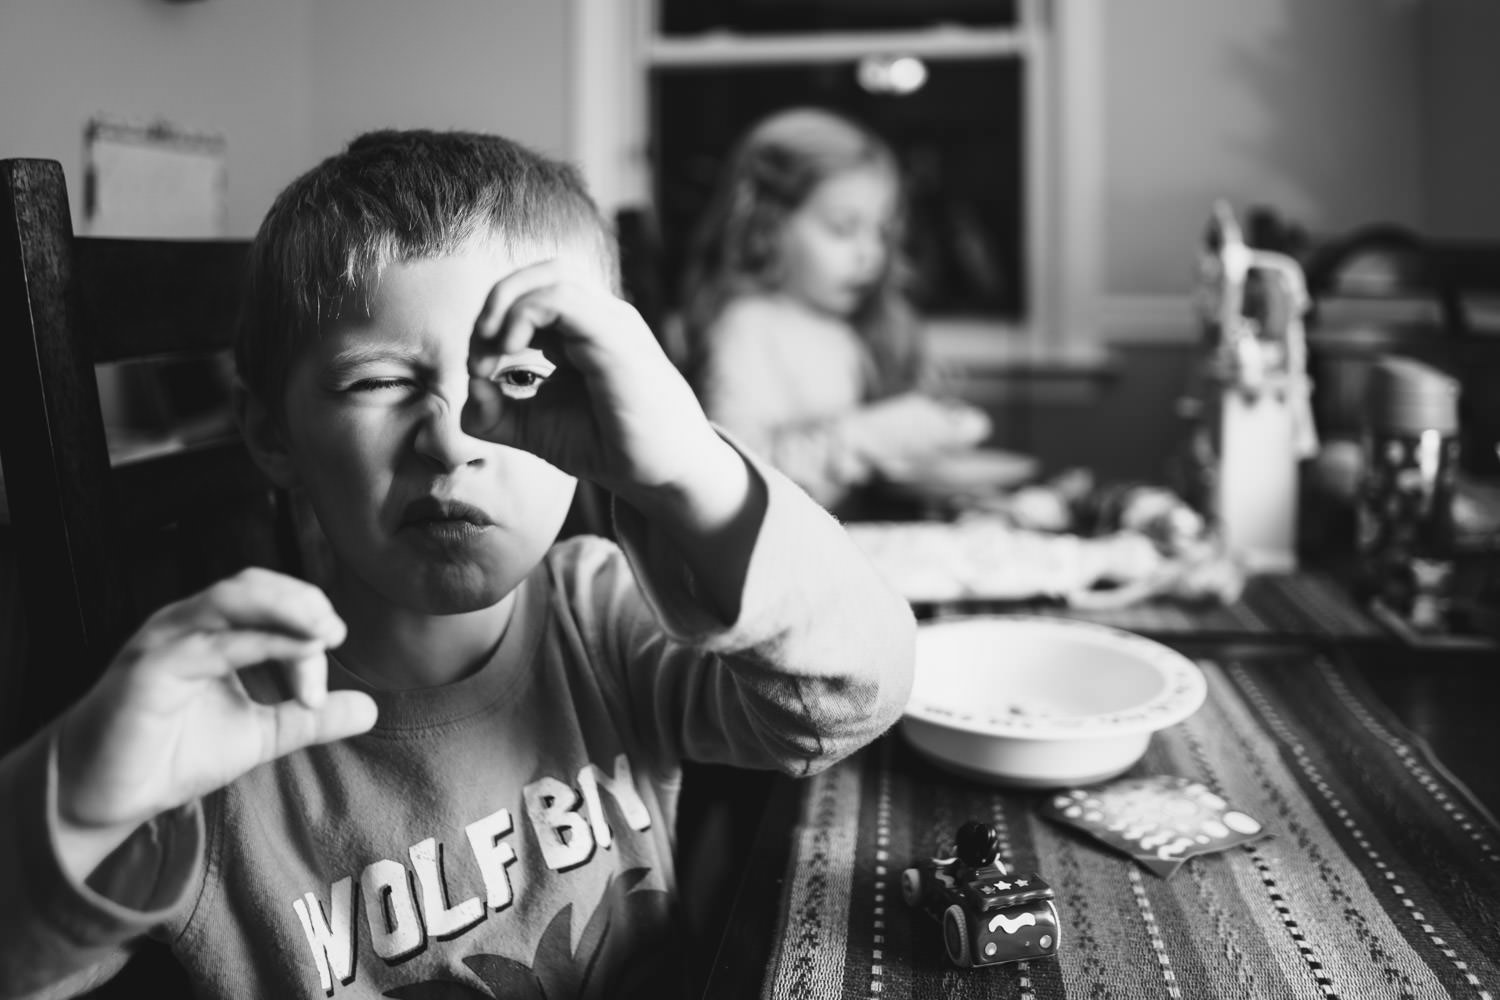 A little boy looks through a telescope he has made with his hand.